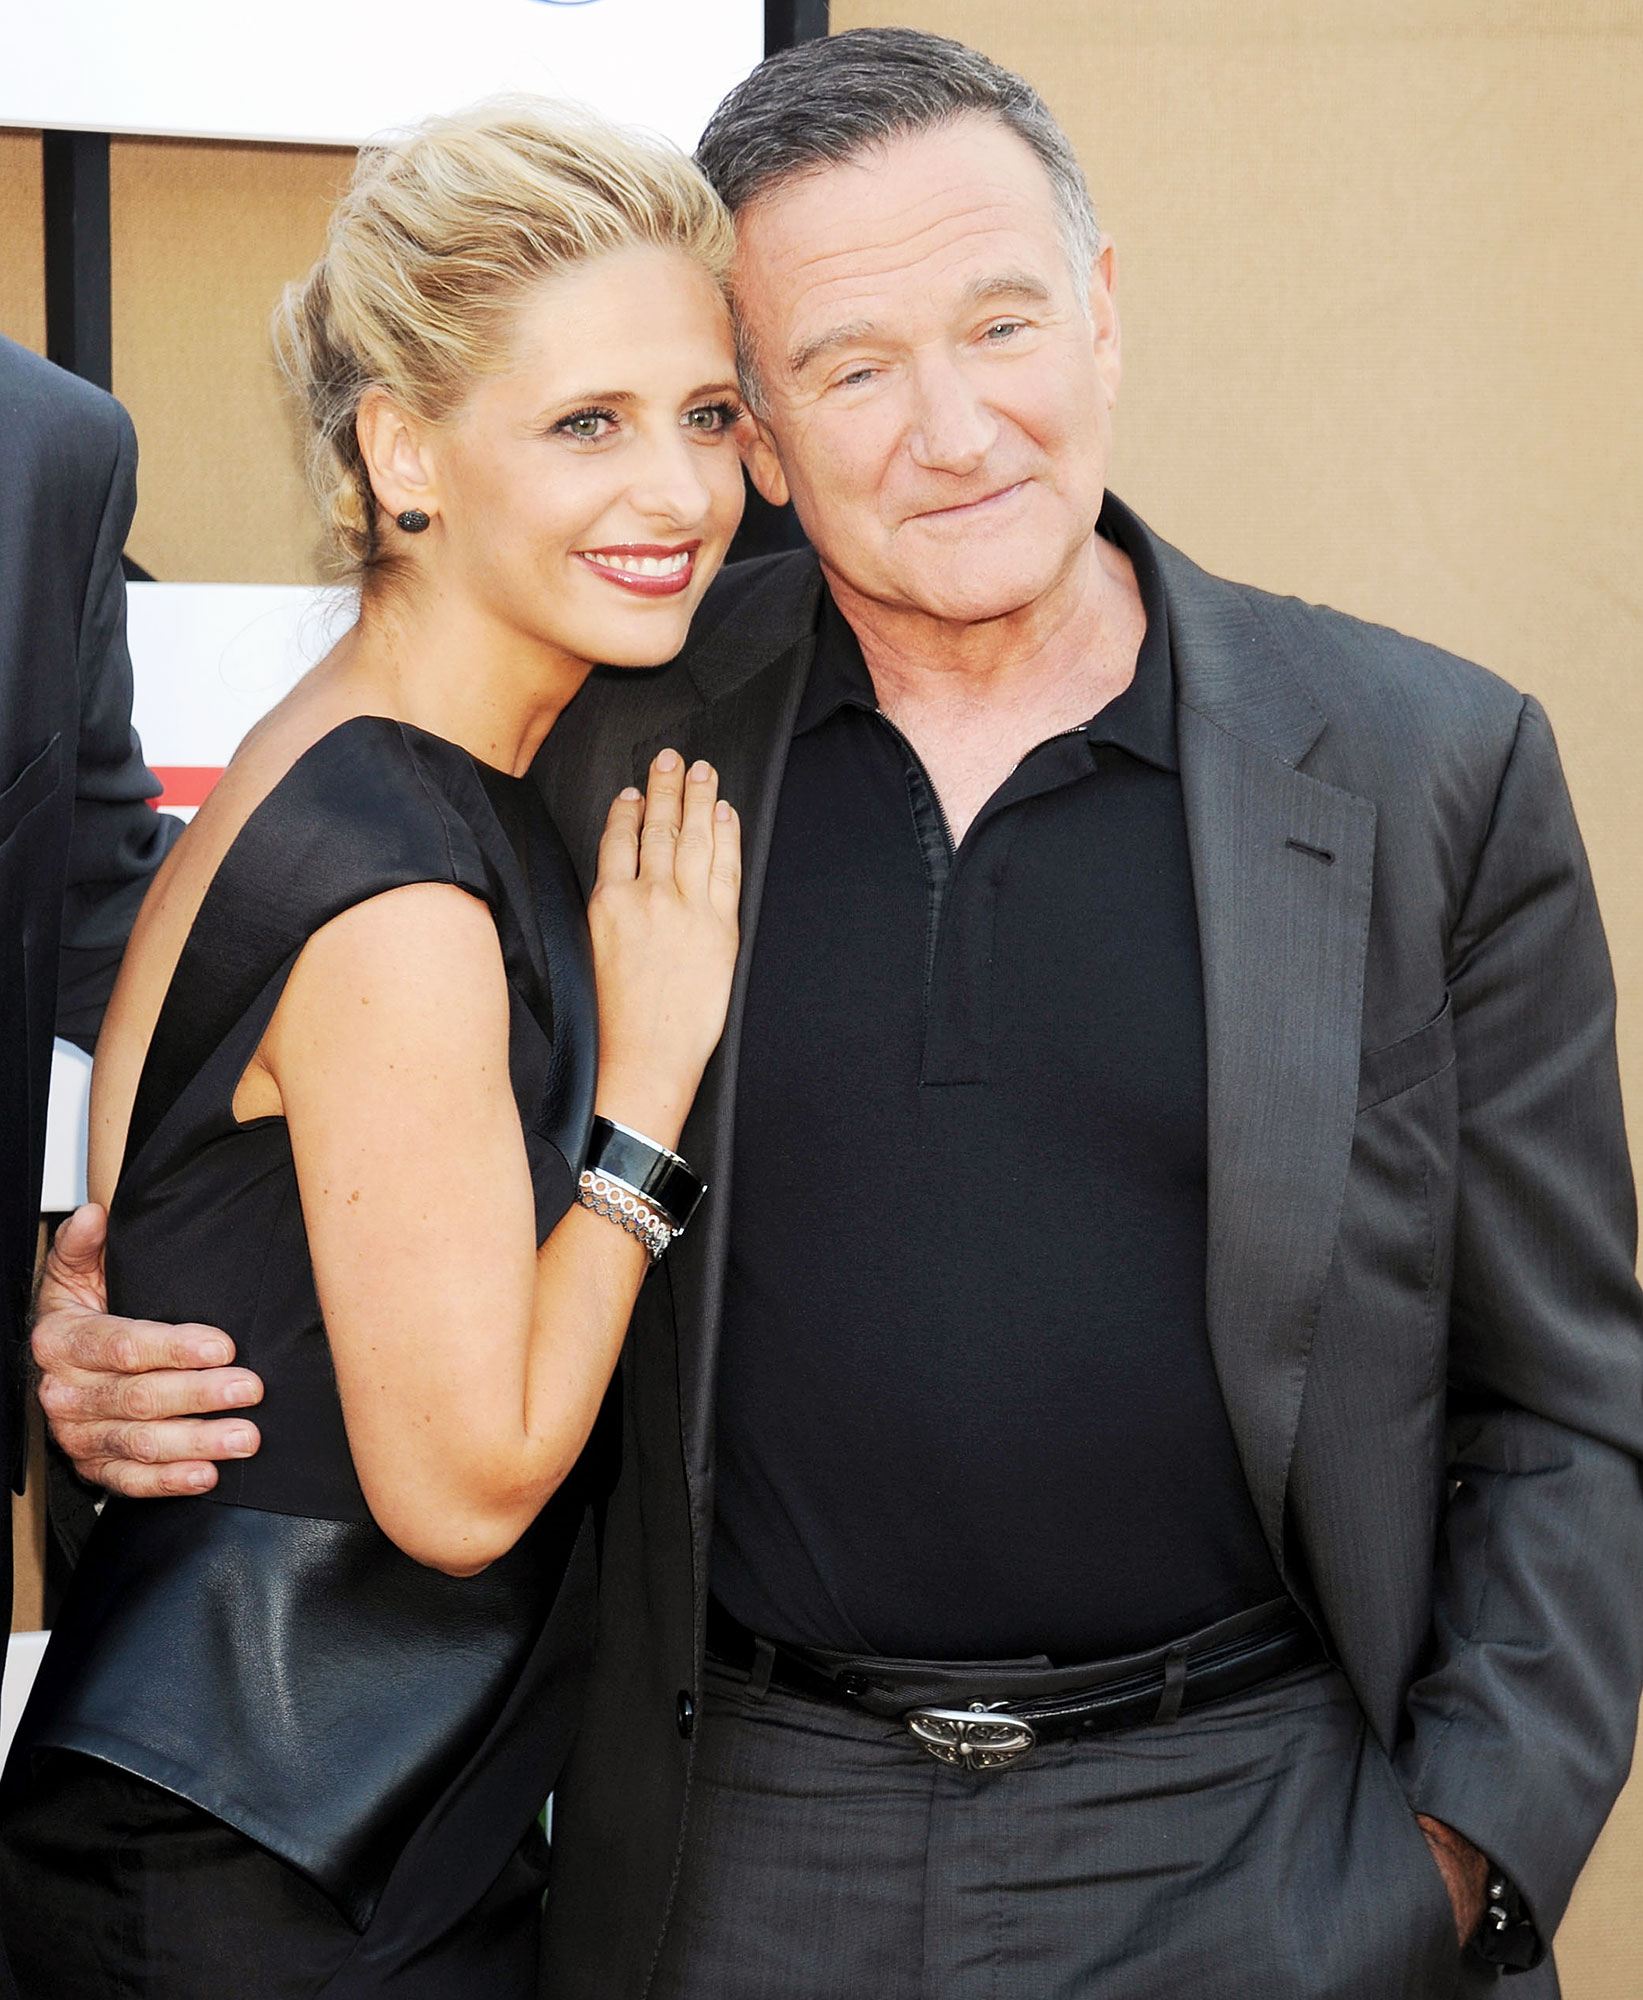 Sarah Michelle Gellar and Robin Williams attend the CBS/CW/Showtime Television Critic Association's Summer Press Tour Party Sarah Michelle Gellar Introduces Her Kids to Mrs Doubtfire on Robin Williams 68th Birthday